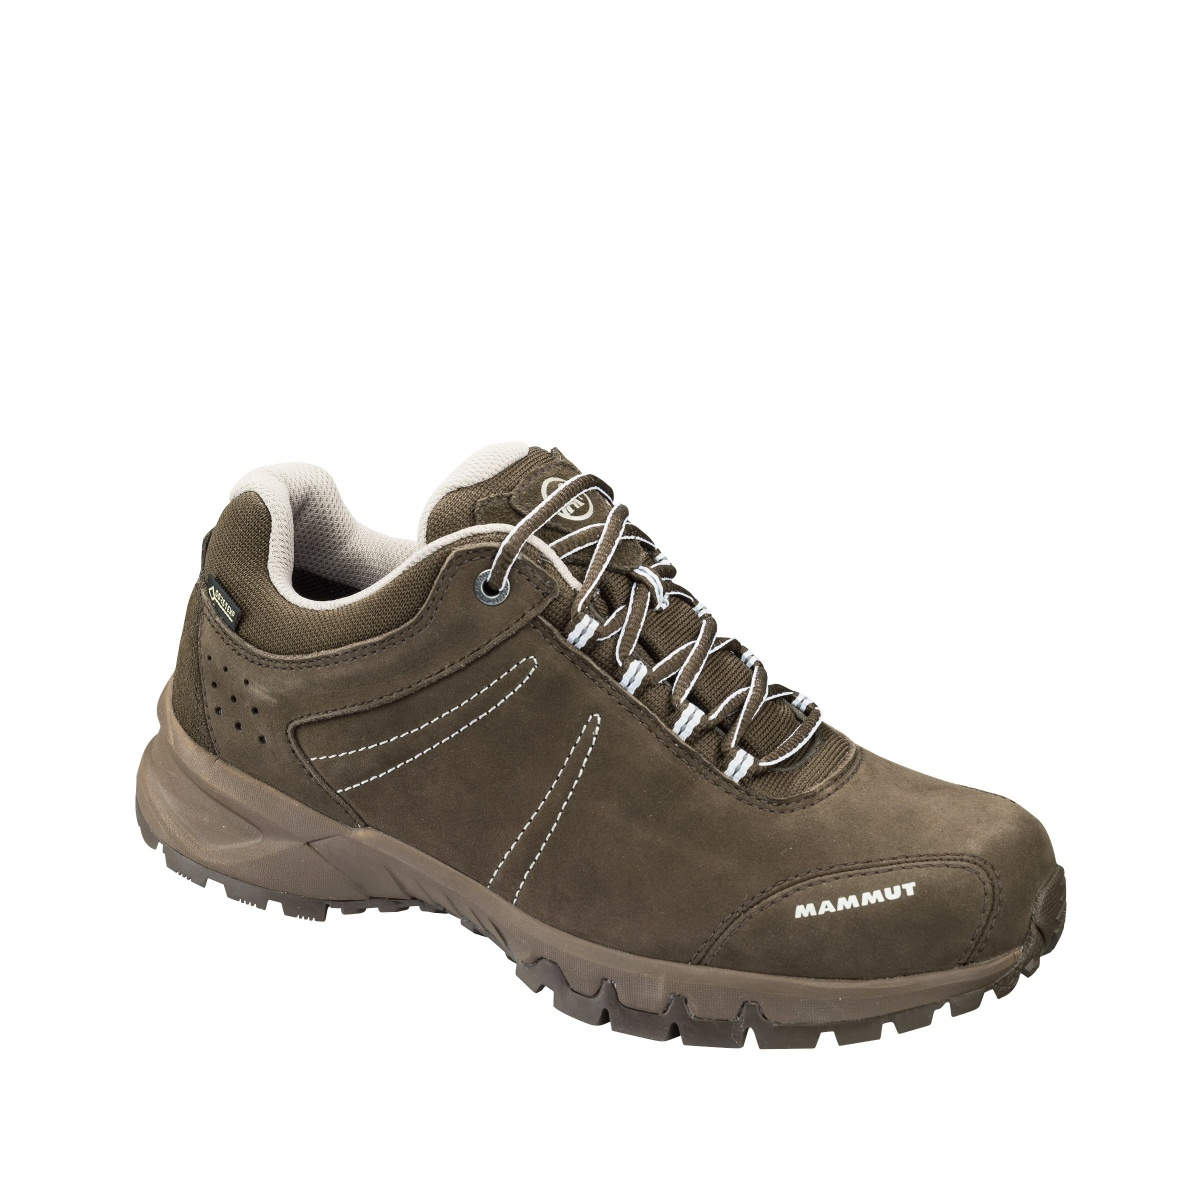 best service 776f2 4c8e6 Mammut Nova III Low GTX 2018 bark Outdoorschuhe Damen